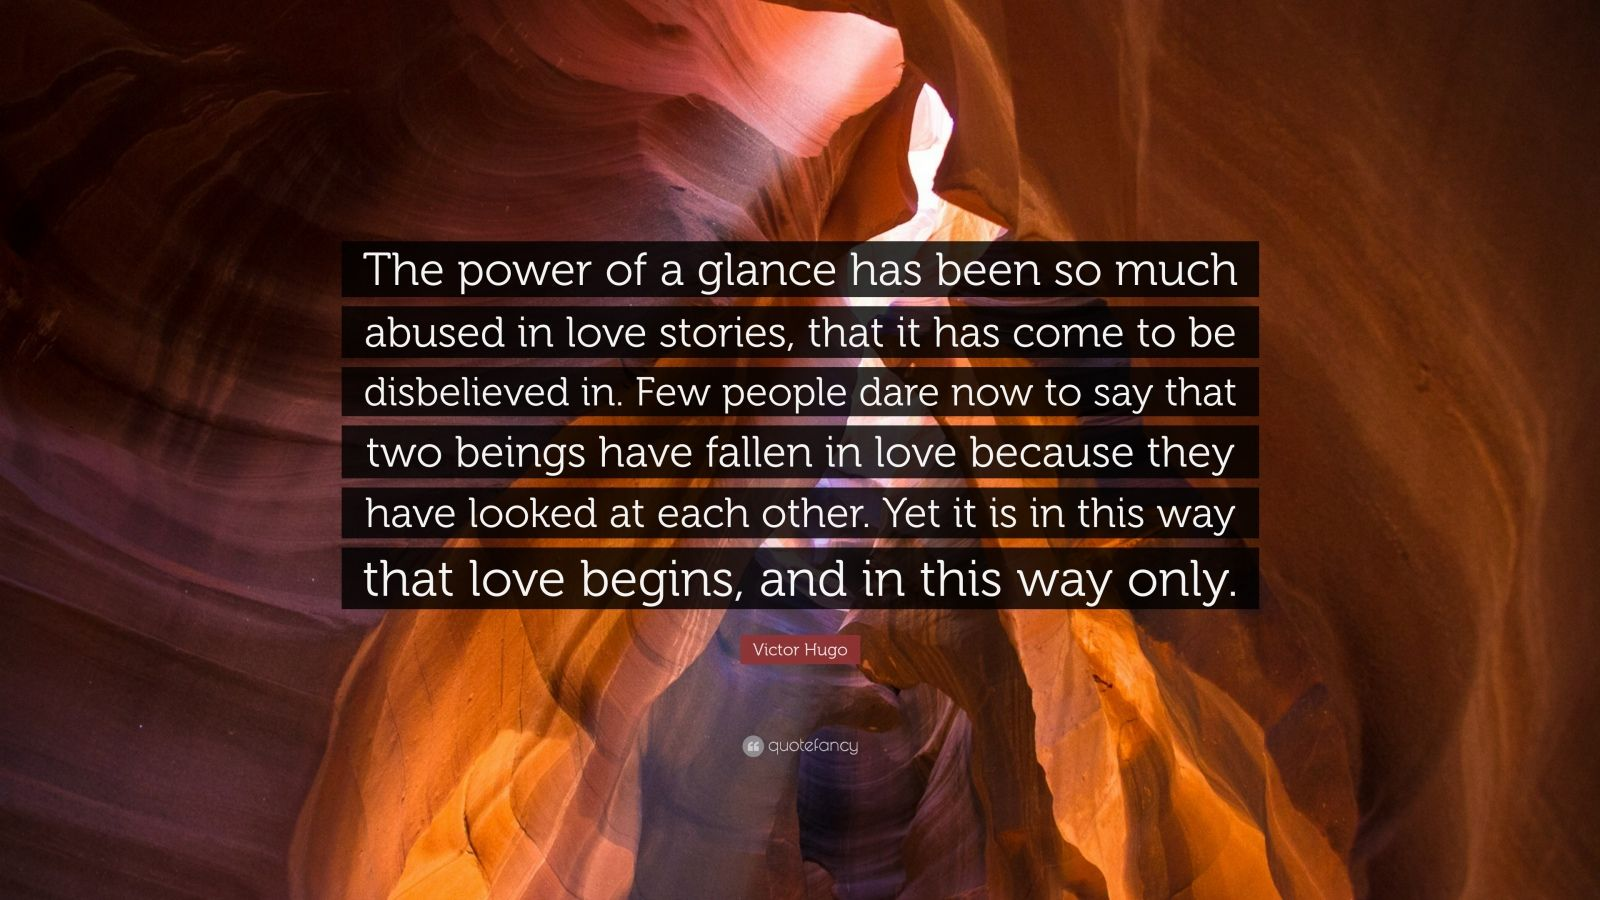 """Victor Hugo Quote: """"The power of a glance has been so much abused in love stories, that it has come to be disbelieved in. Few people dare now to say that two beings have fallen in love because they have looked at each other. Yet it is in this way that love begins, and in this way only."""""""